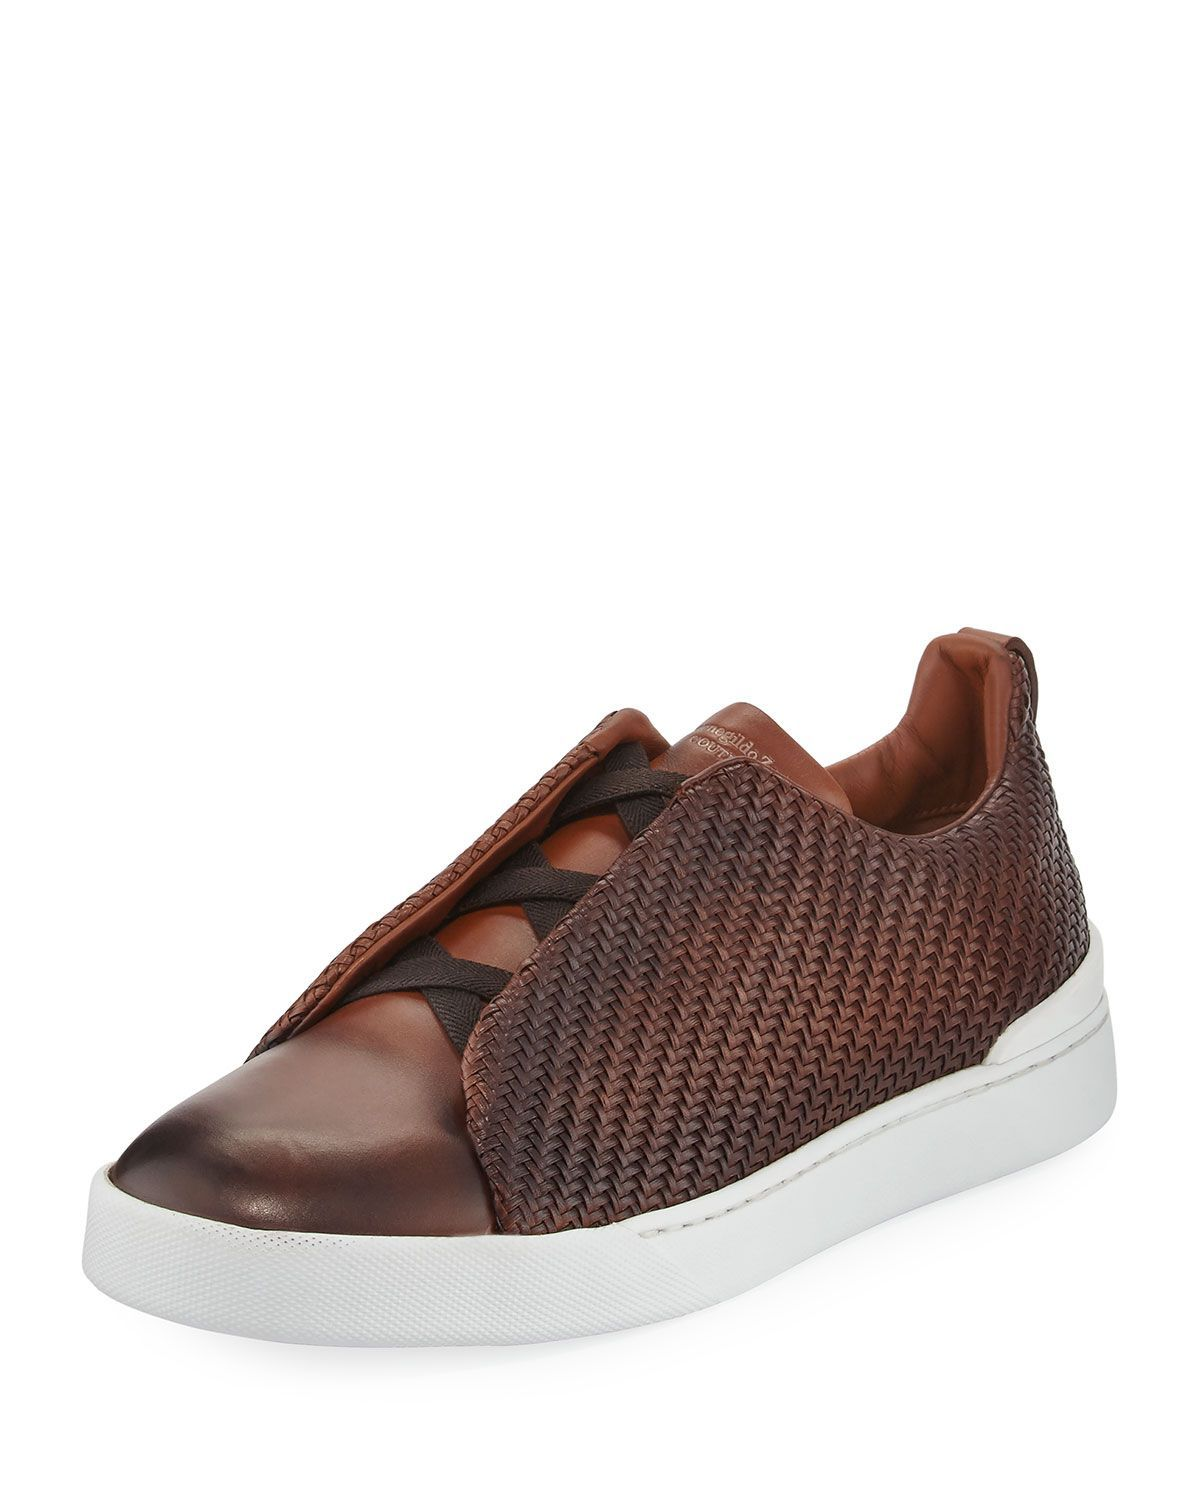 0584e561 Men's Couture Triple-Stitch Pelle Tessuta Leather Low-Top Sneakers ...